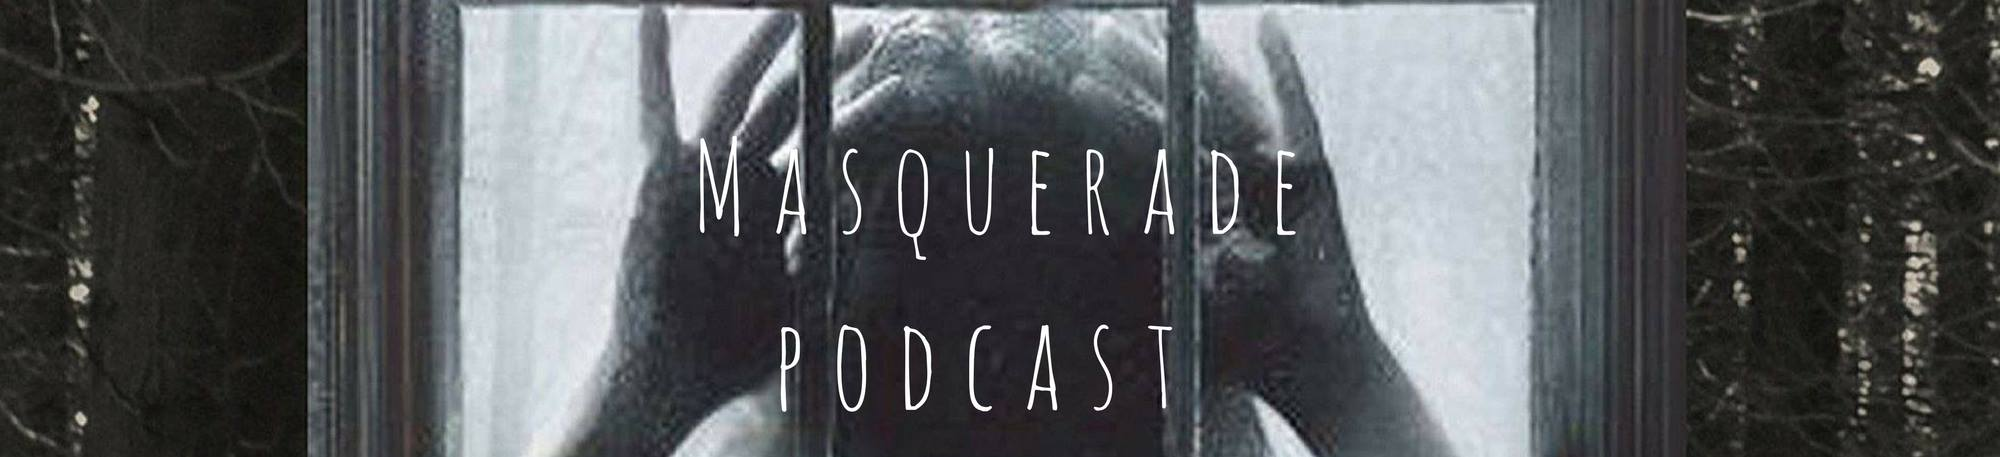 Masquerade Podcast: Unexplained Mysteries with author Steph Young